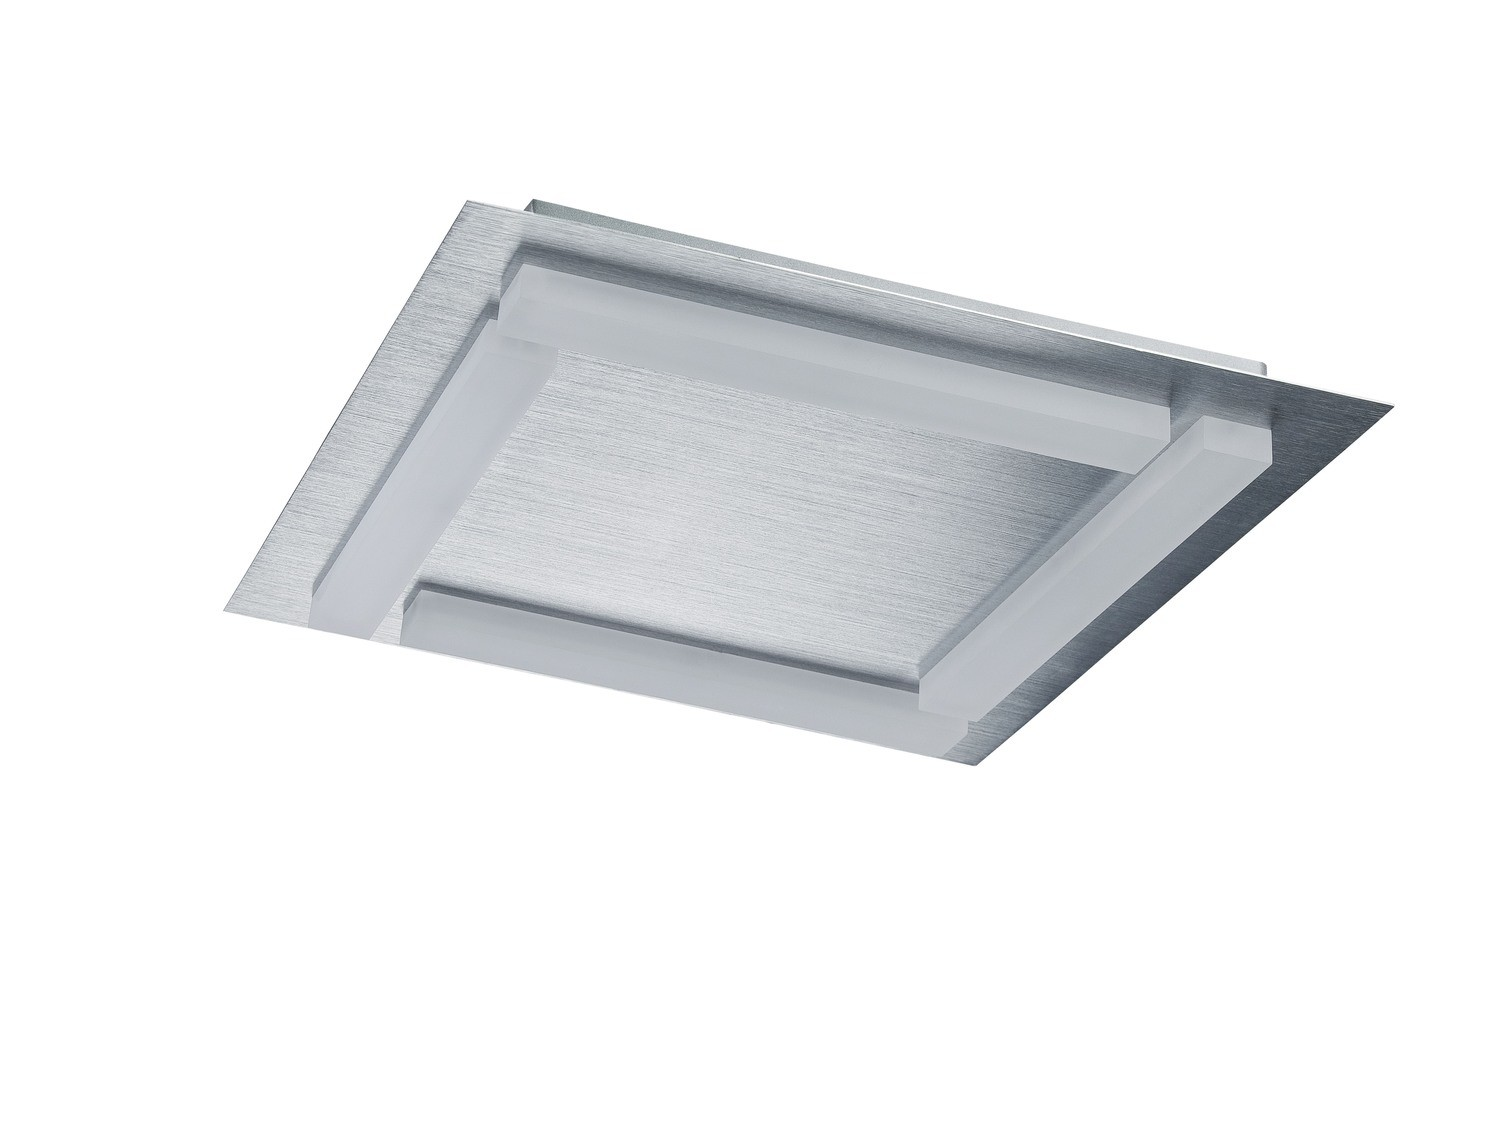 Verona Ceiling 4 Light 20W LED 3000K, 1800lm, Satin Aluminium/Frosted Acrylic, 3yrs Warranty